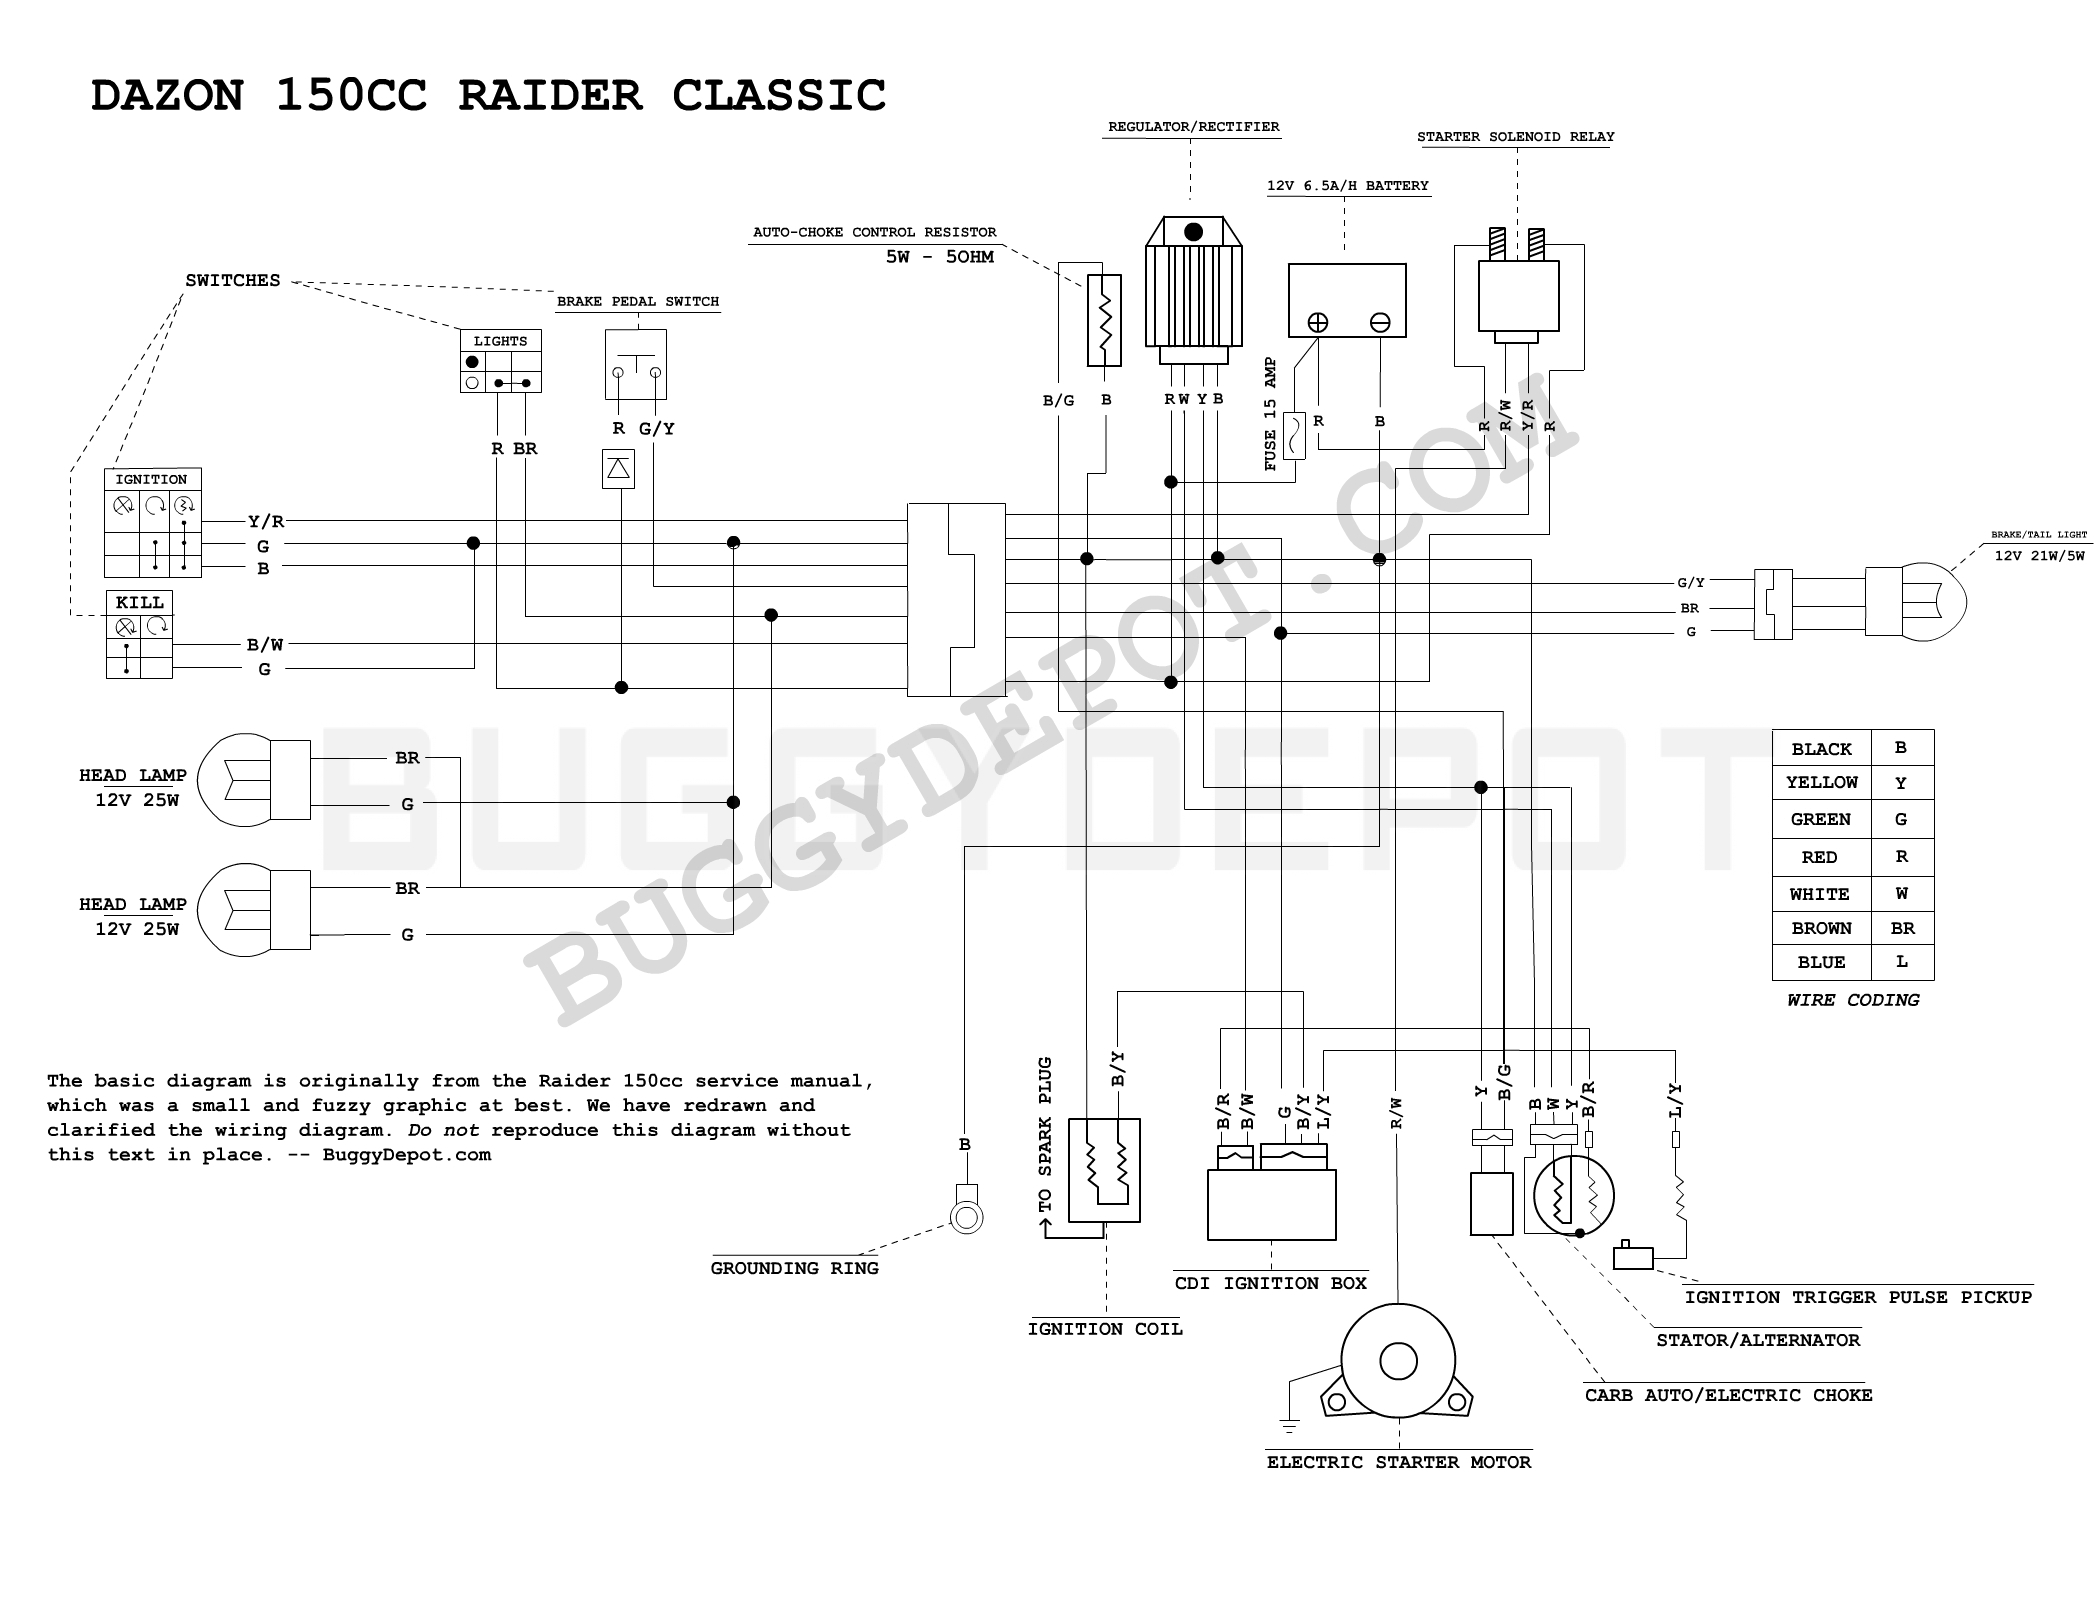 2006 chinese atv wiring diagram dazon raider classic wiring diagram buggy depot technical center article 33 1278205207